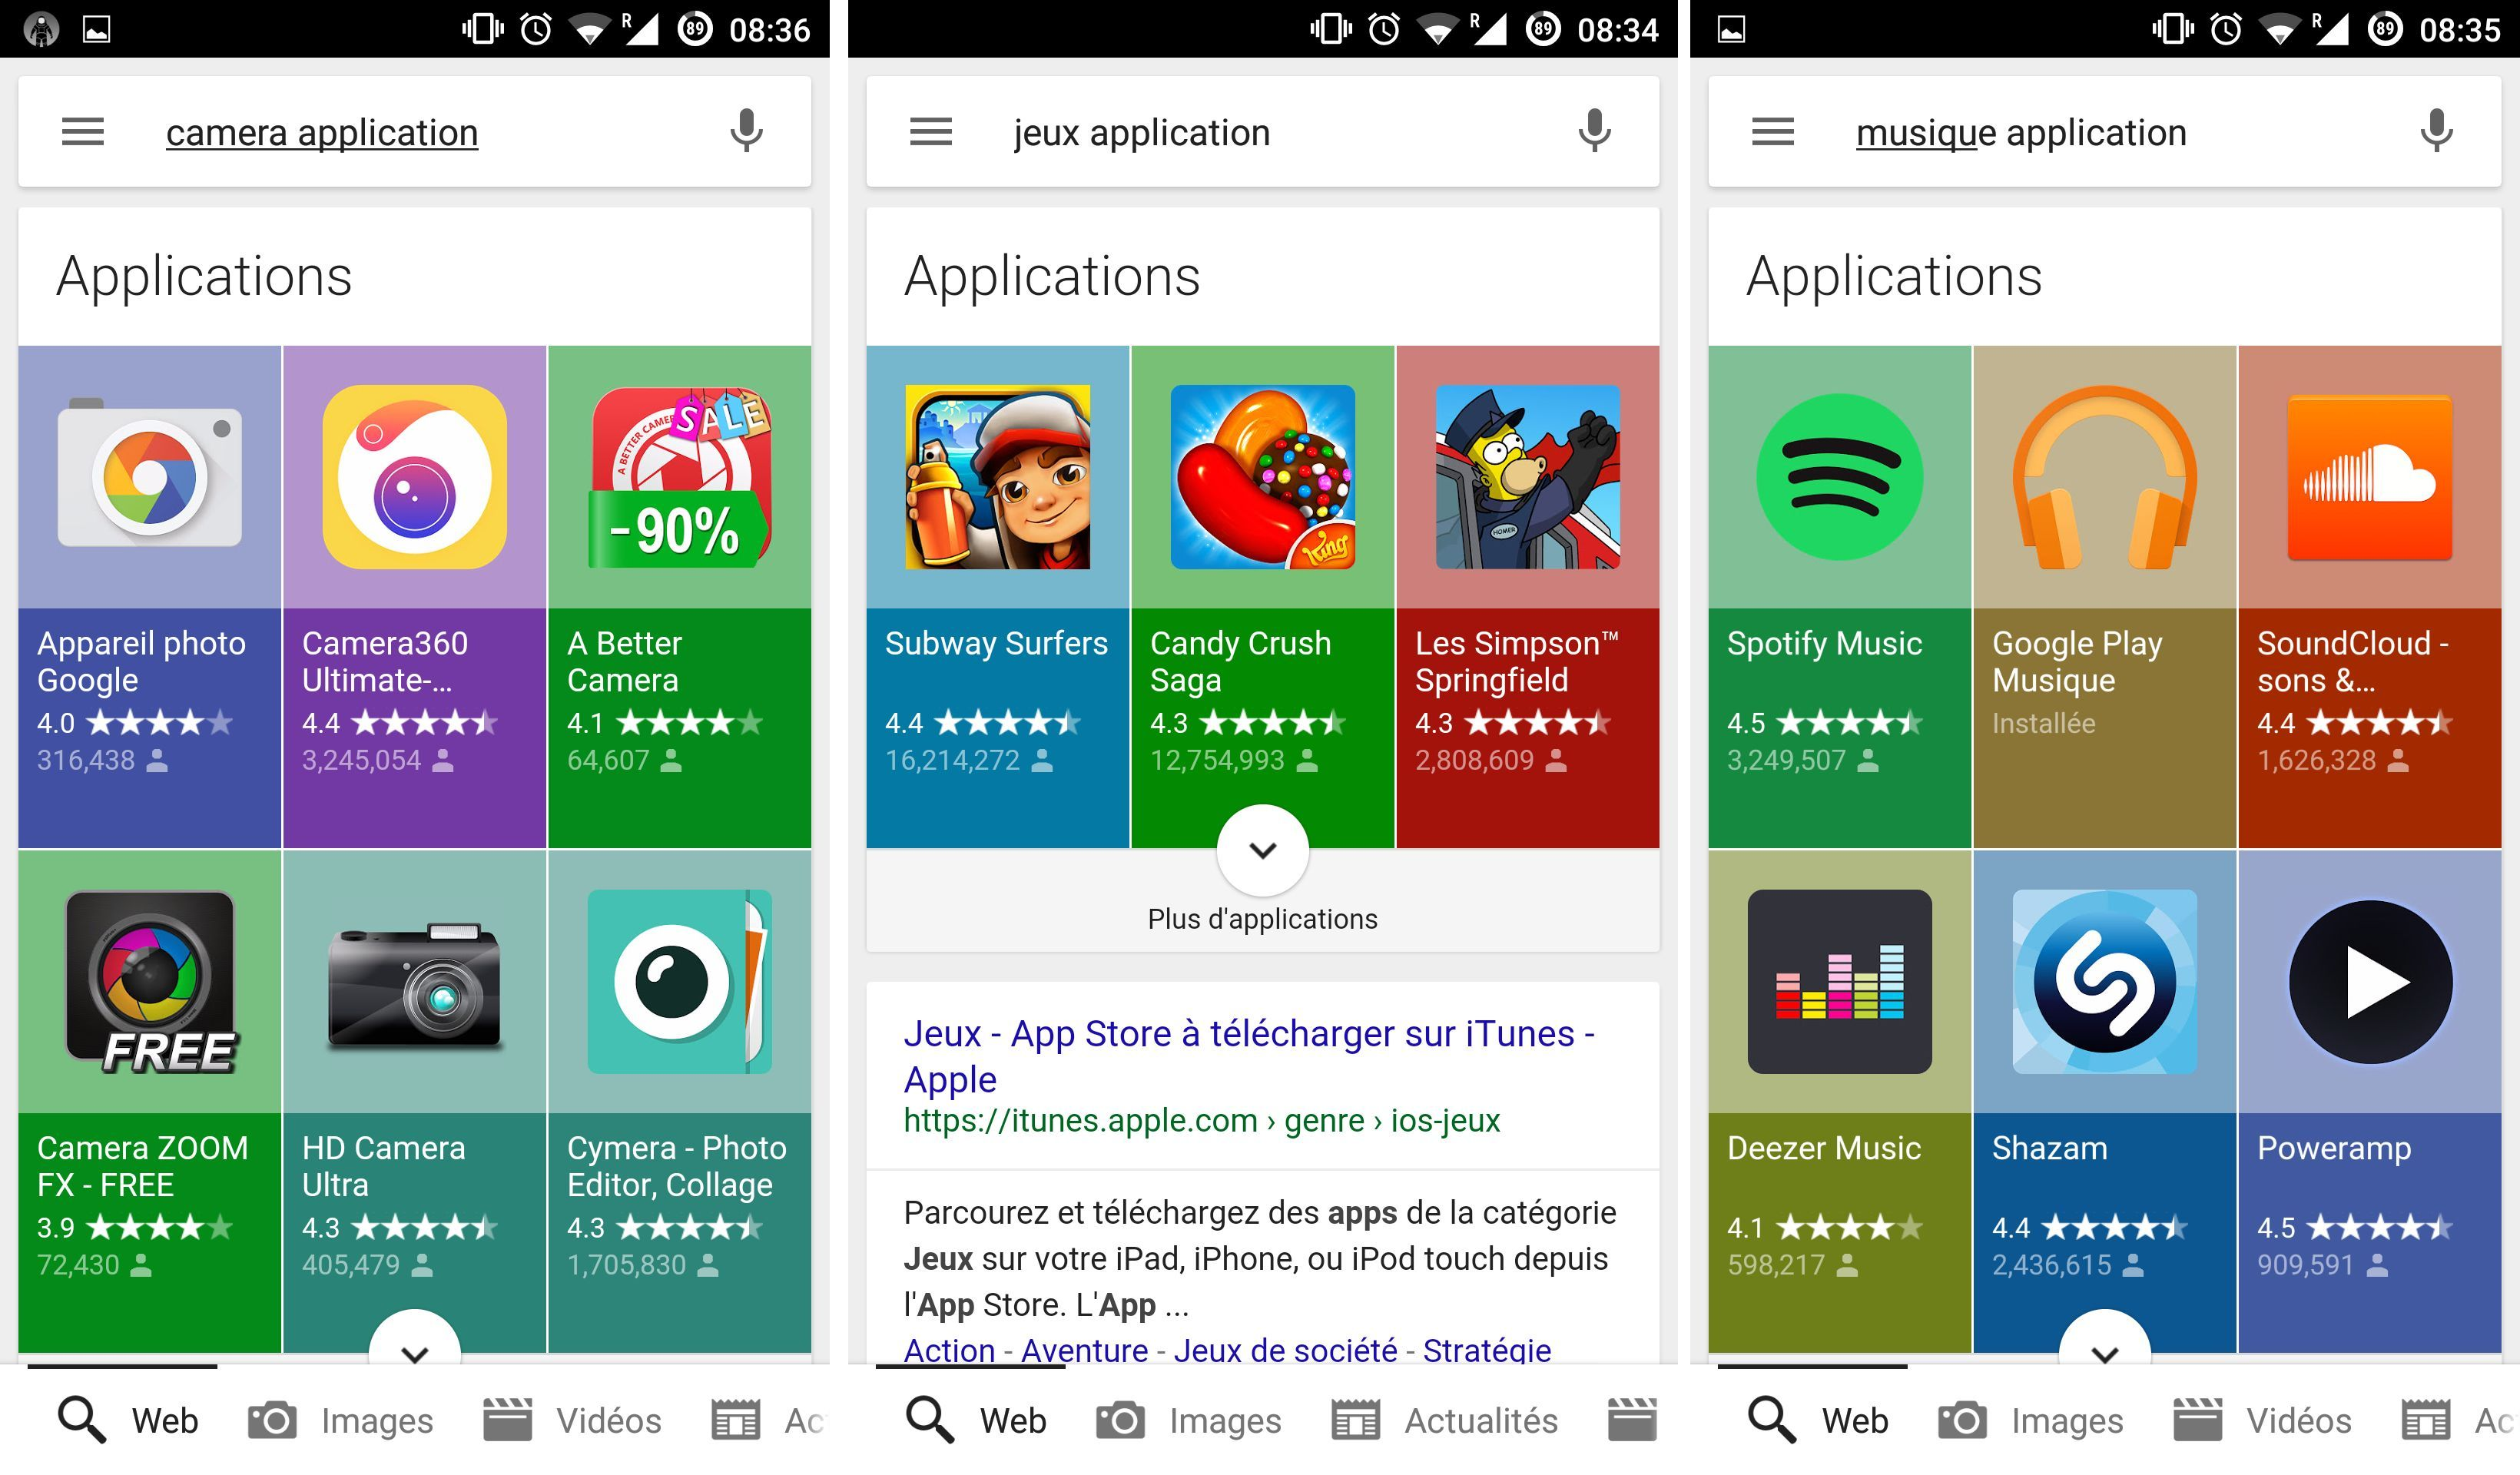 Google a refondu le design de la recherche d'application au sein de Google Search